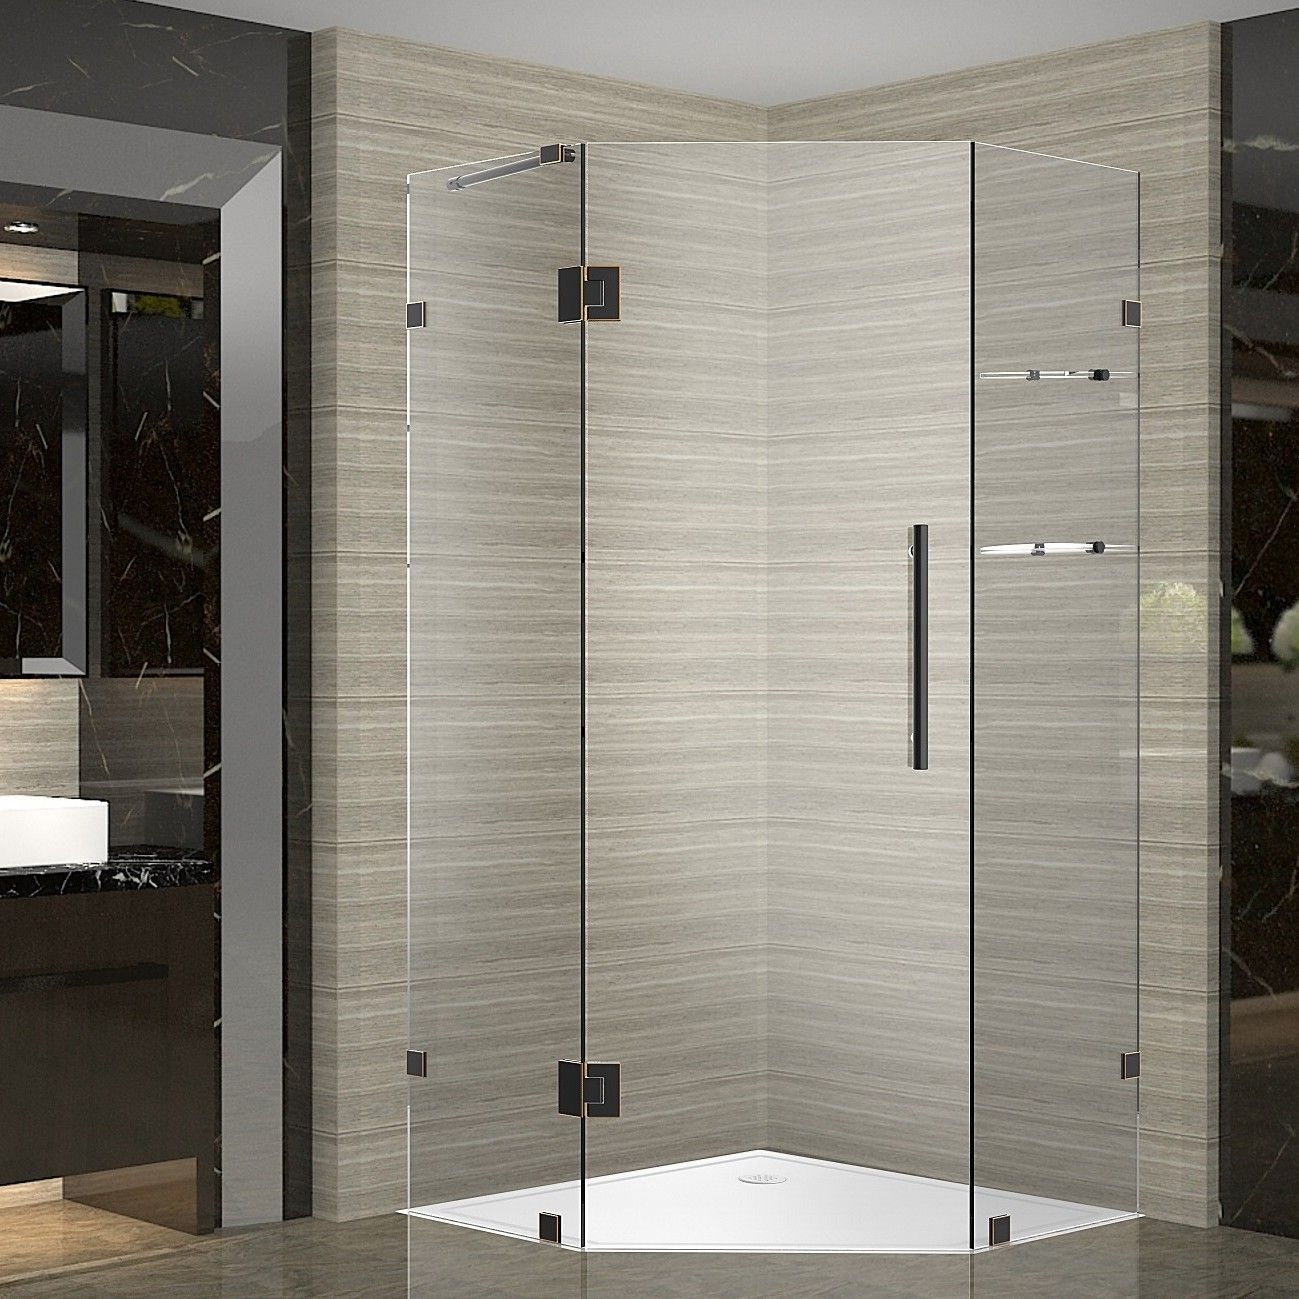 Neoscape Gs 38 X 72 Neo Angle Hinged Shower Enclosure Neo